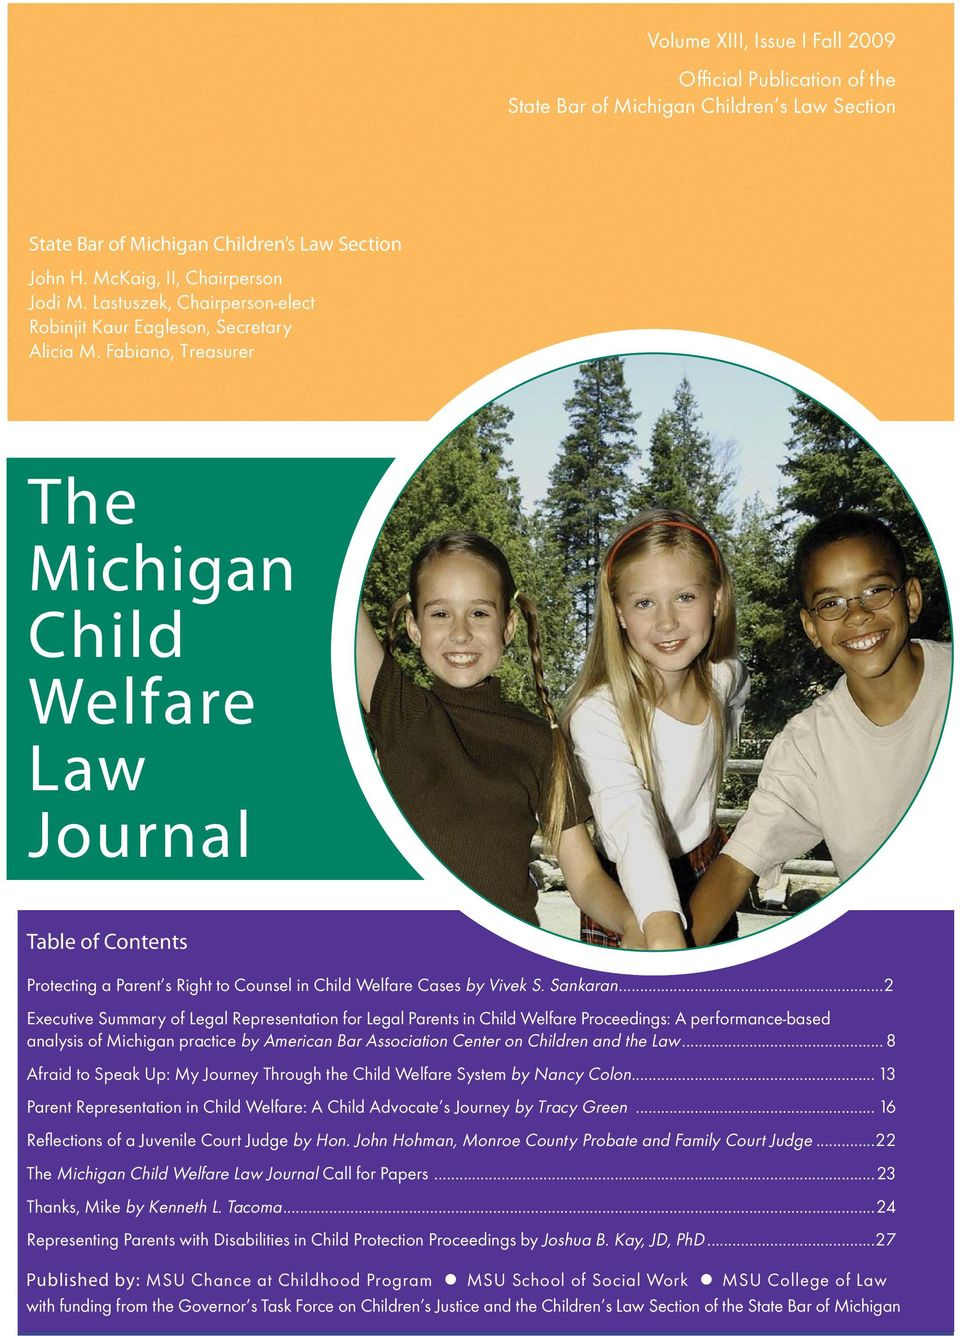 Fabiano, Treasurer The Michigan Child Welfare Law Journal Table of Contents Protecting a Parent s Right to Counsel in Child Welfare Cases by Vivek S. Sankaran.